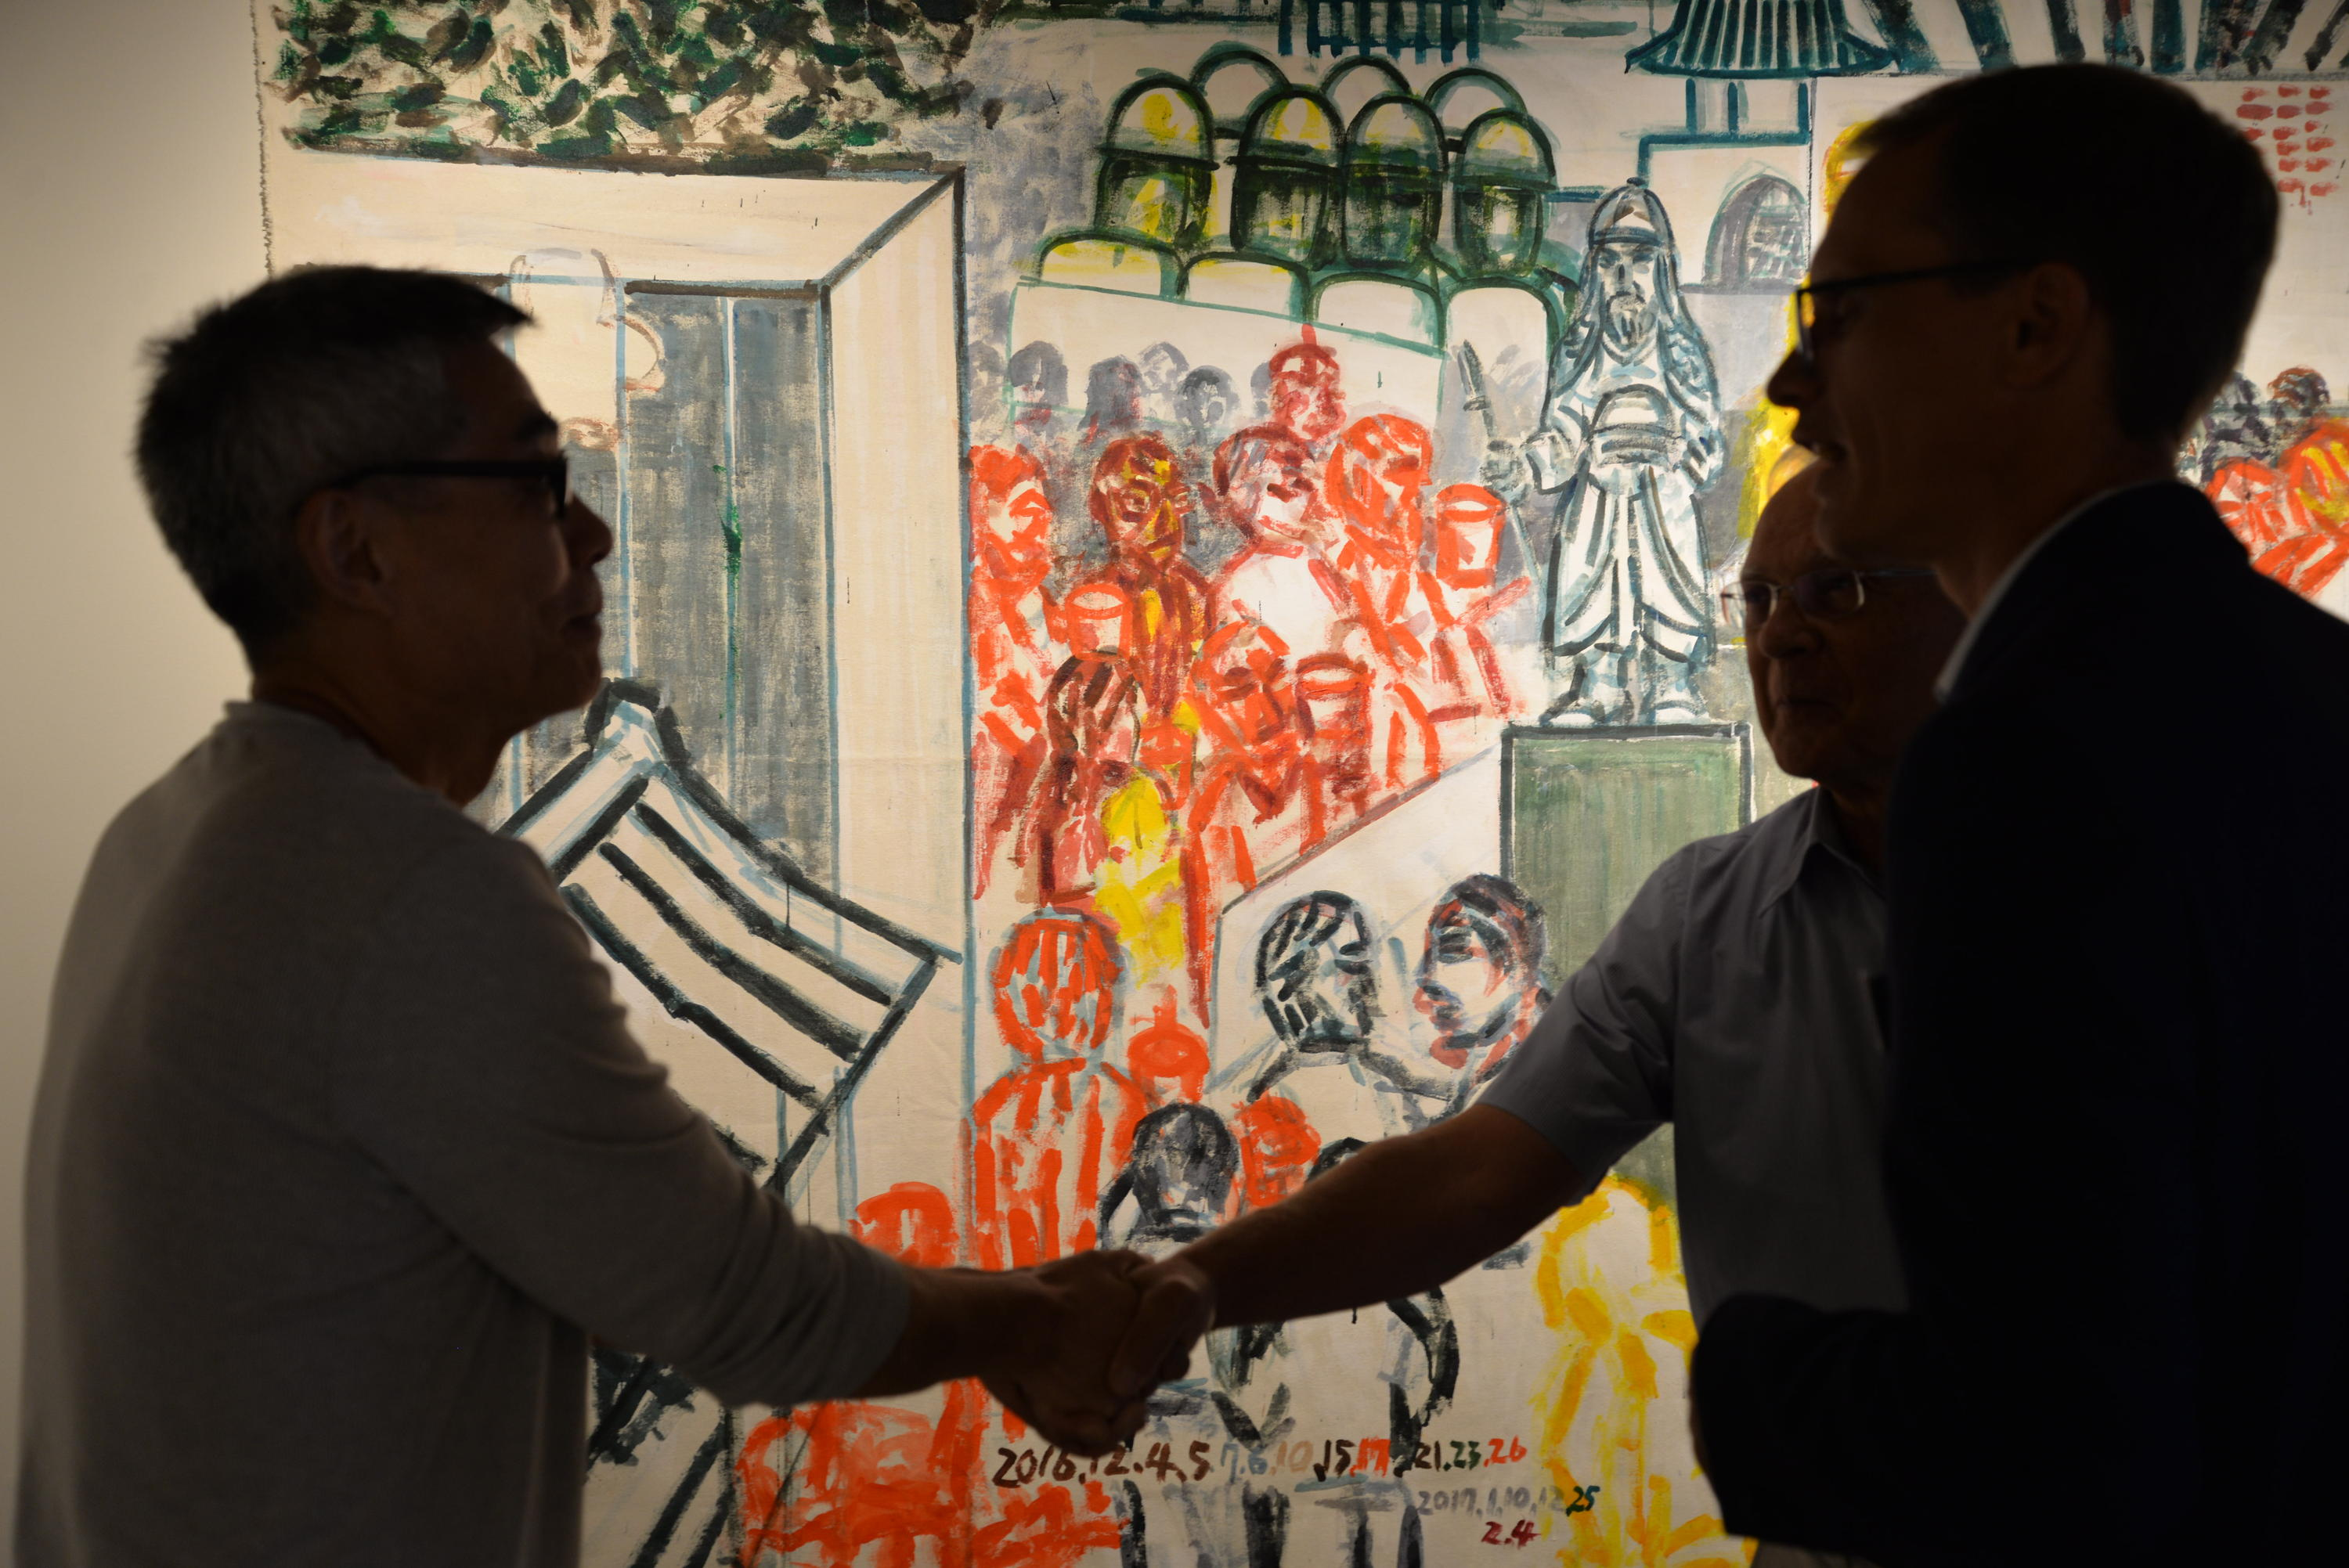 Two men shaking hands with art in background